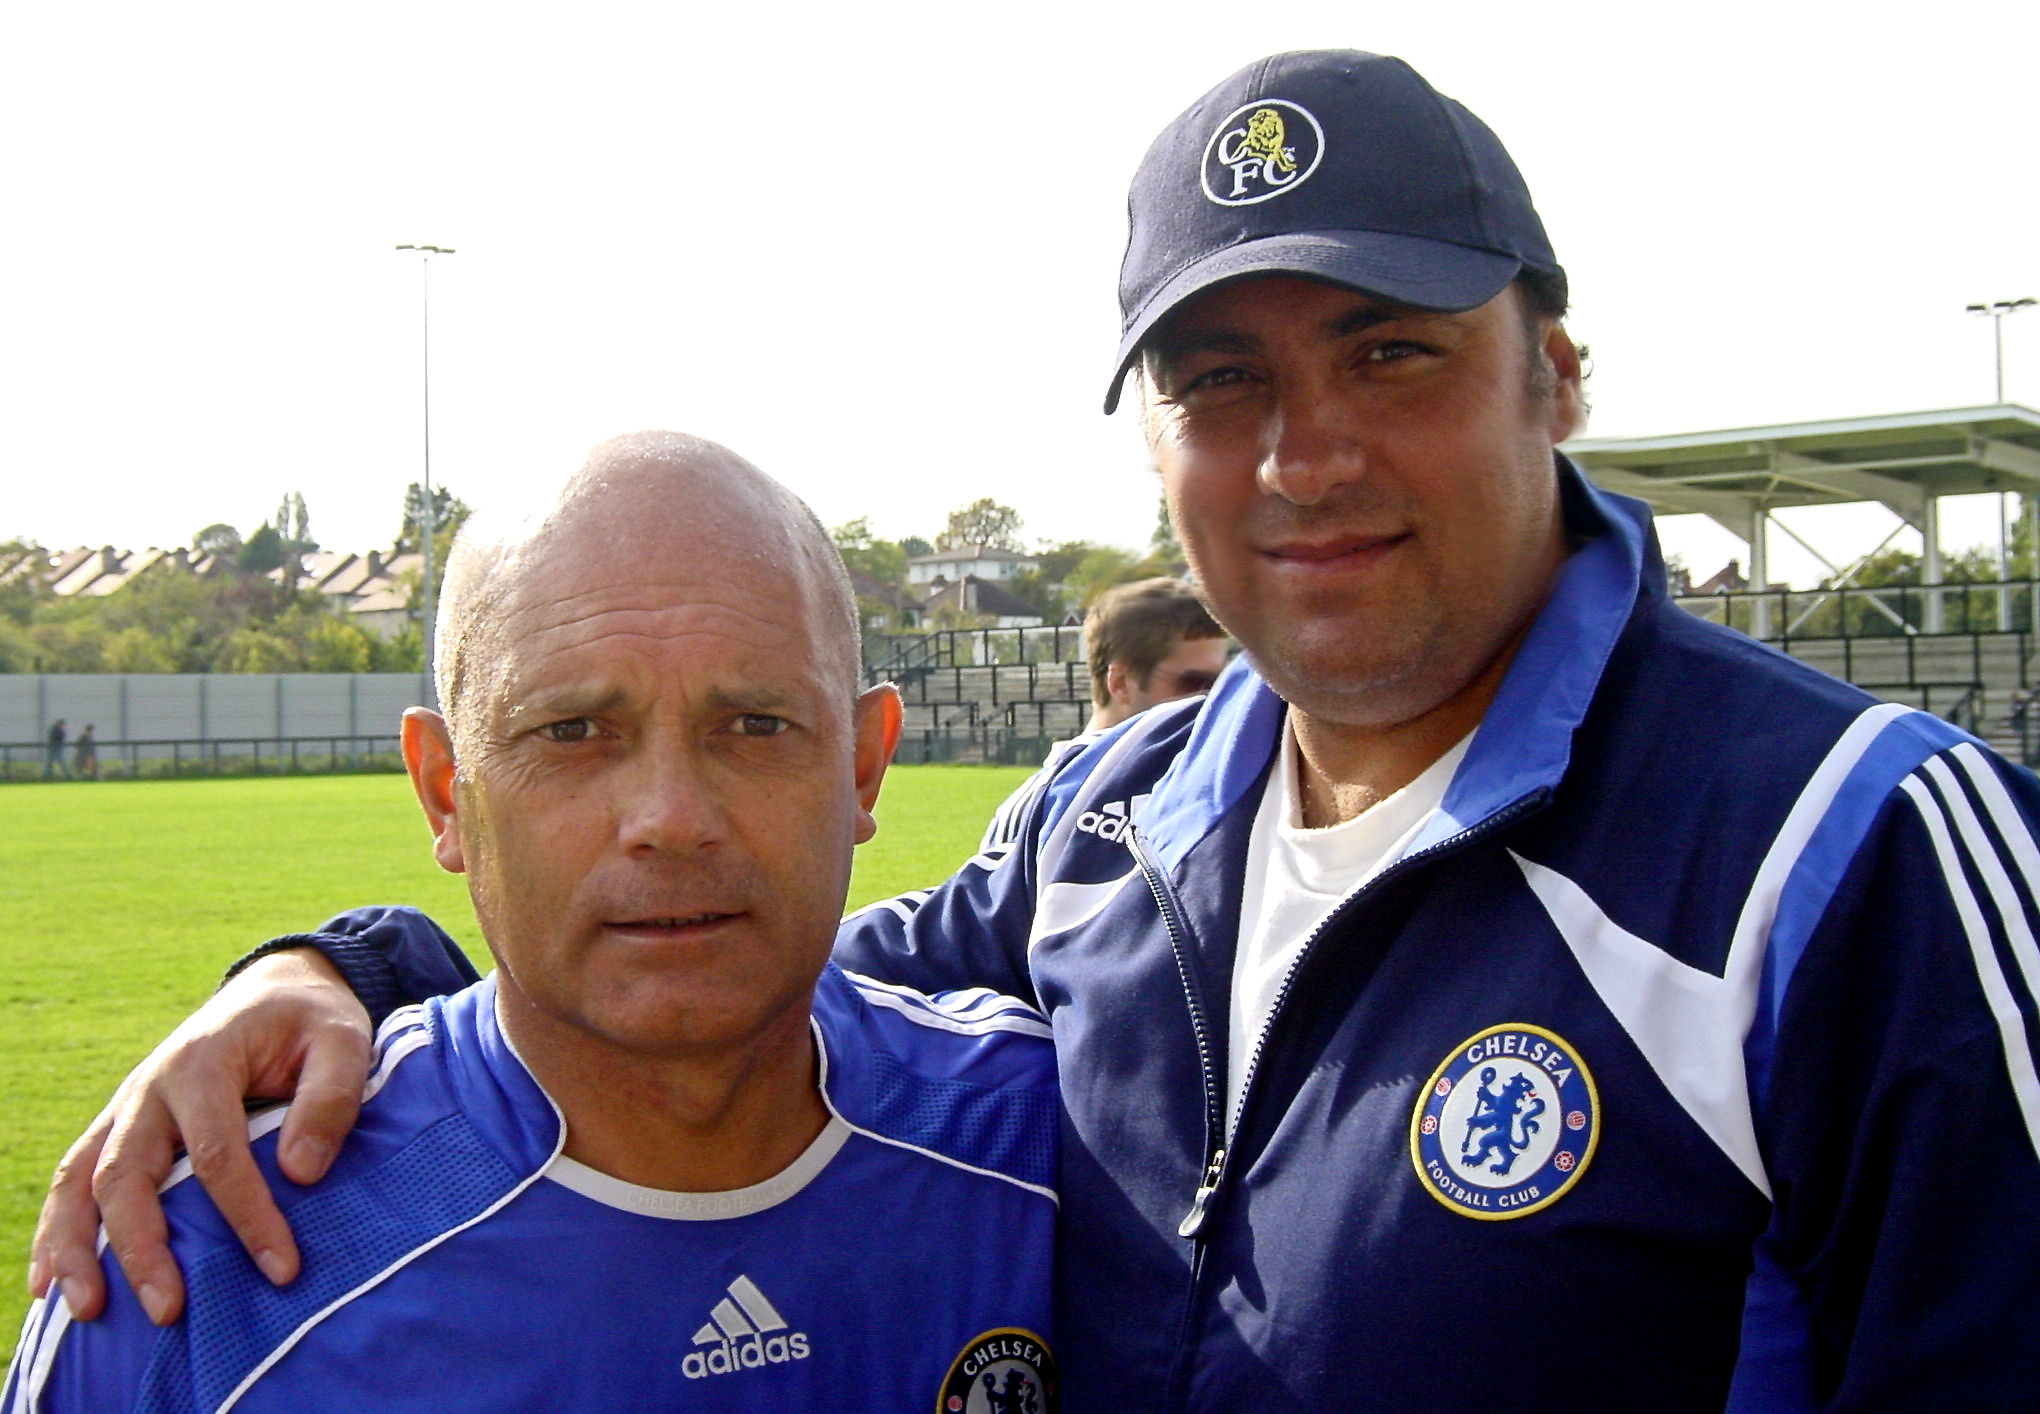 Ray Wilkins & Dave Sherwood